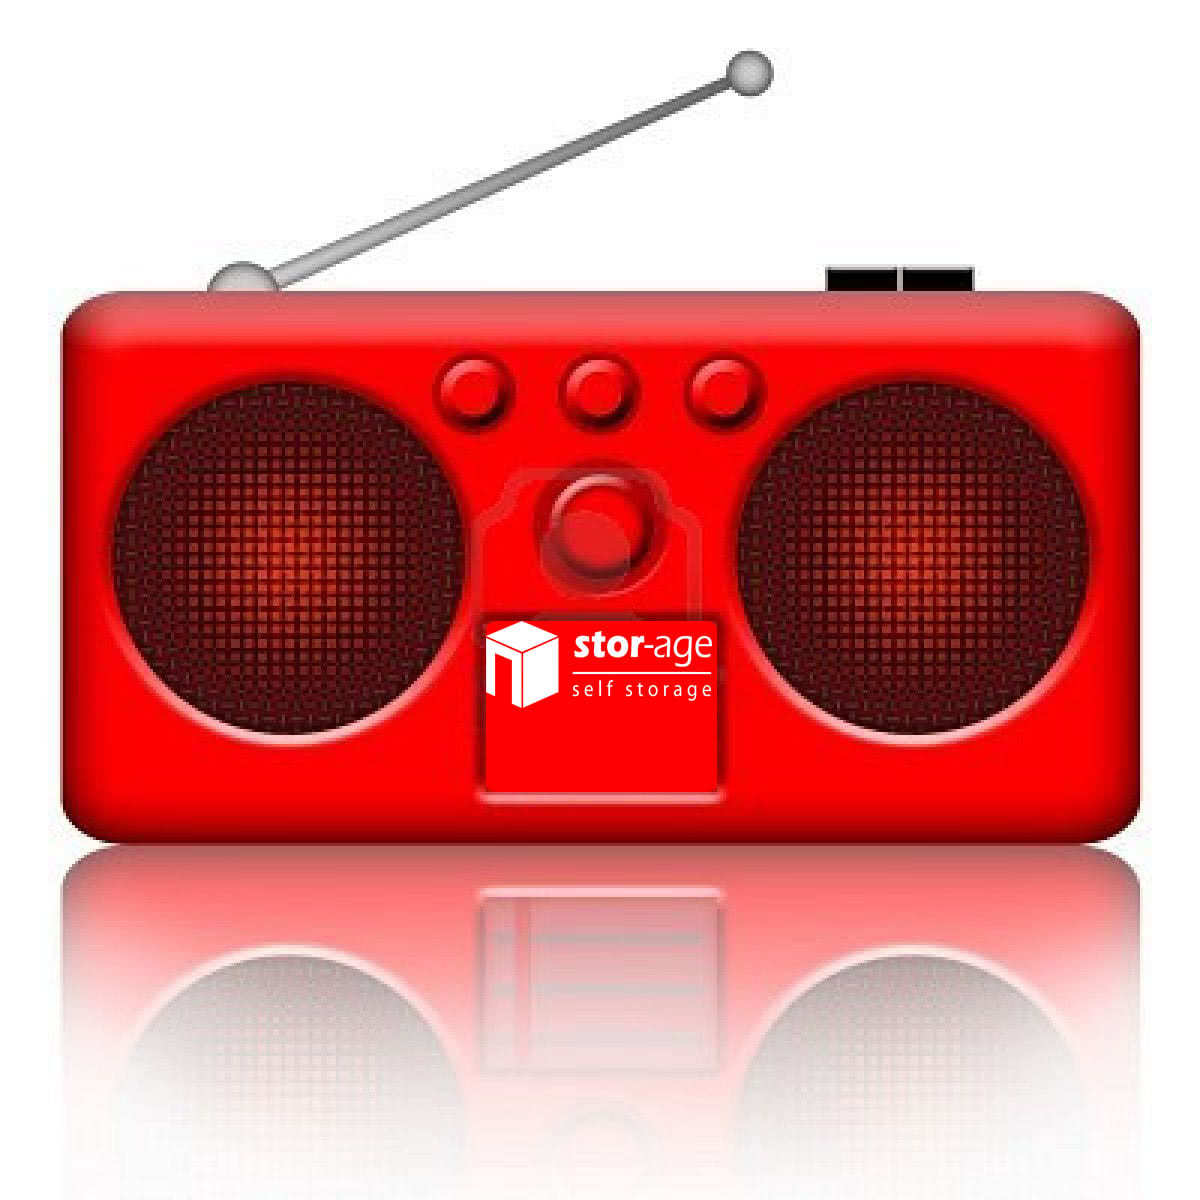 Stor-Age red radio advert